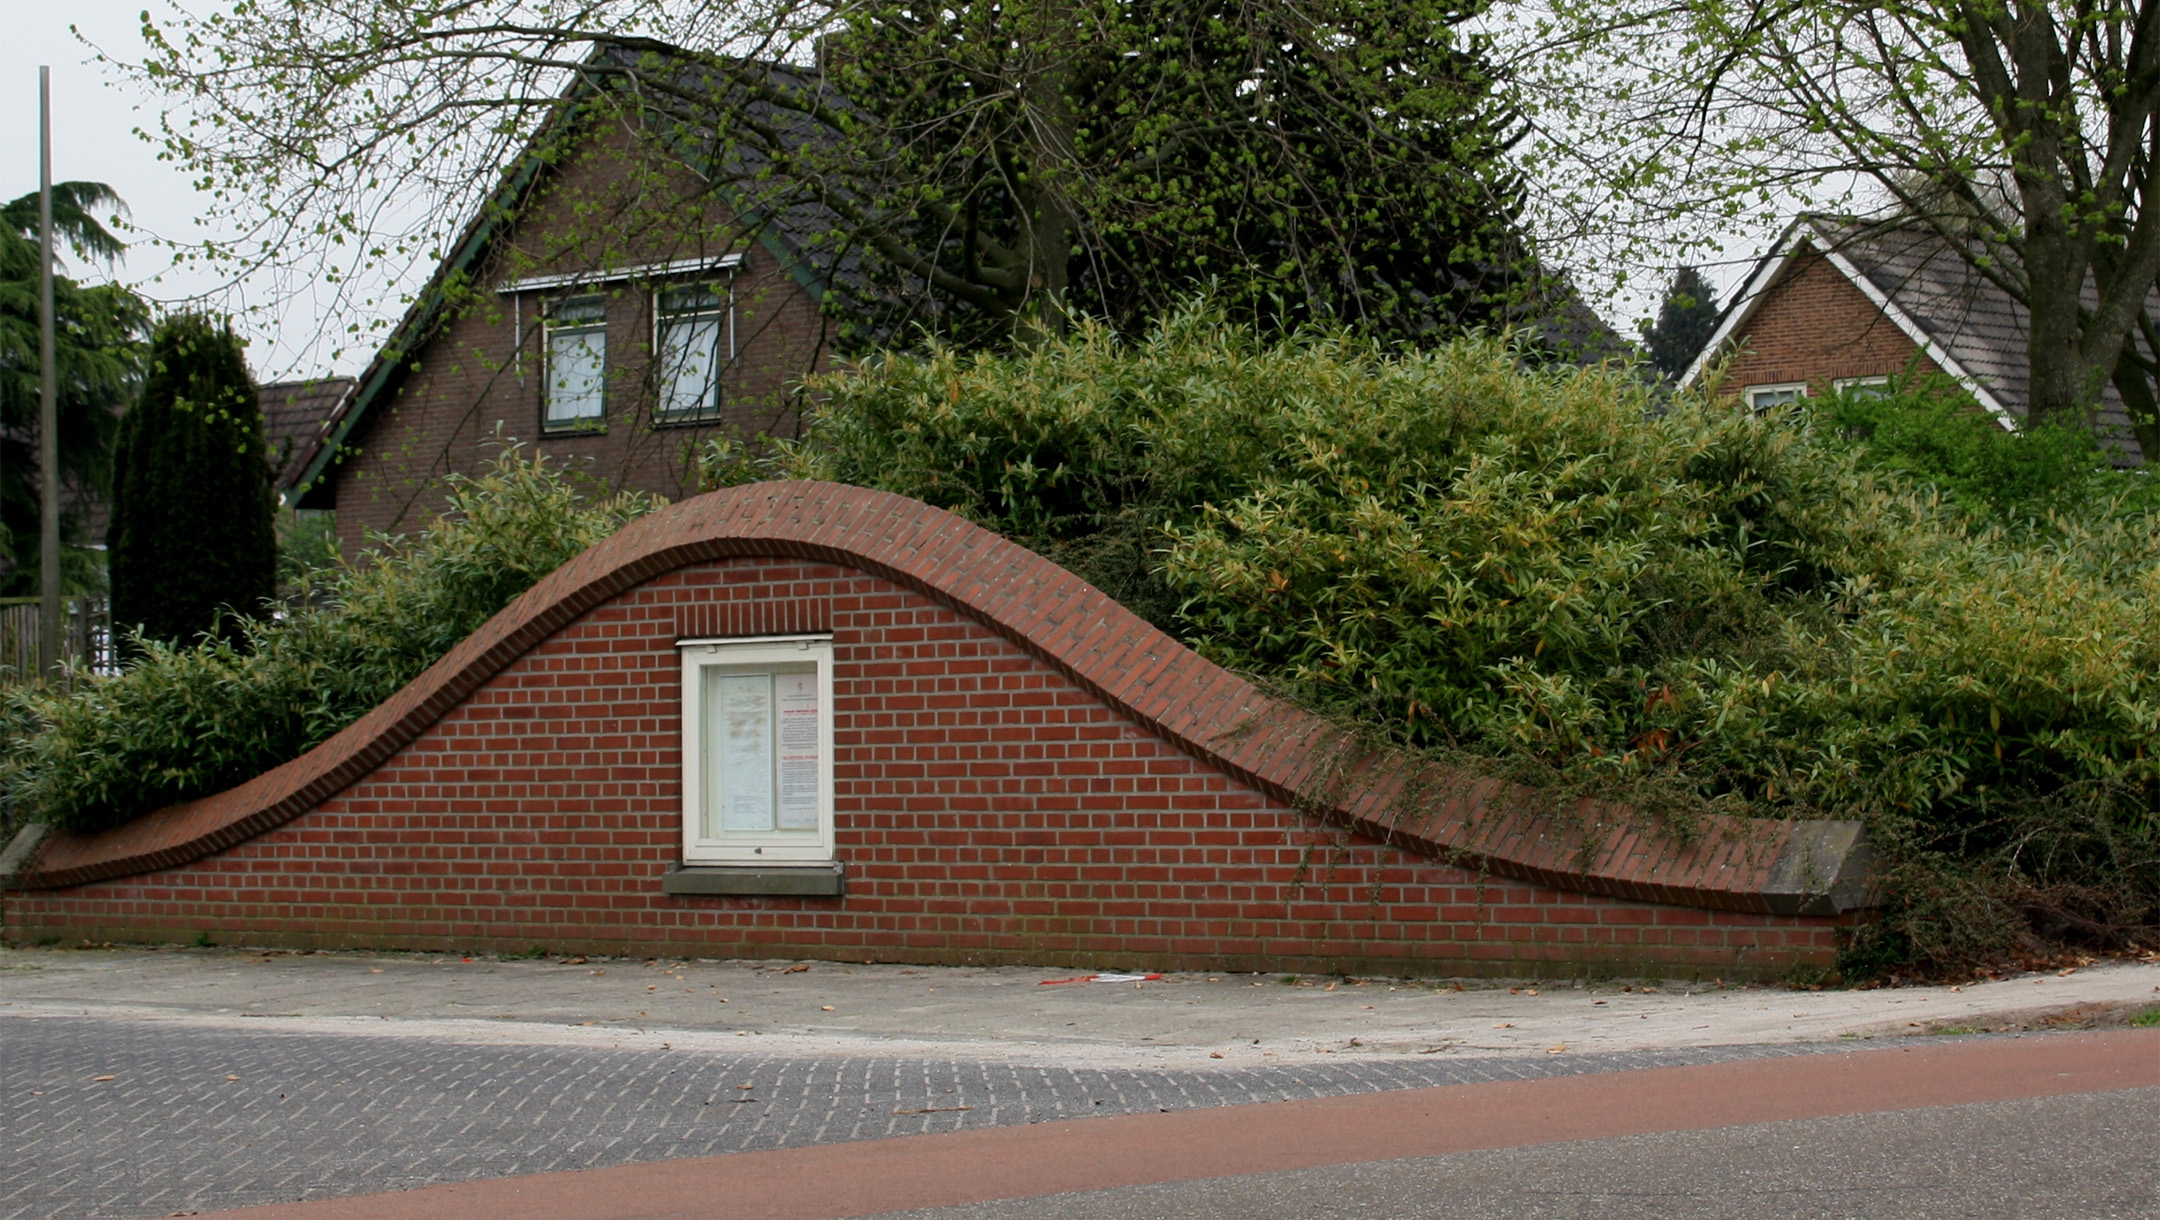 A copy of a certificate from Yad Vashem features prominently on the wartime monument of Nieuwlande, the Netherlands, which is designed to resemble a dugout for hiding Jews during the Holocaust. (Wikimedia Commons)